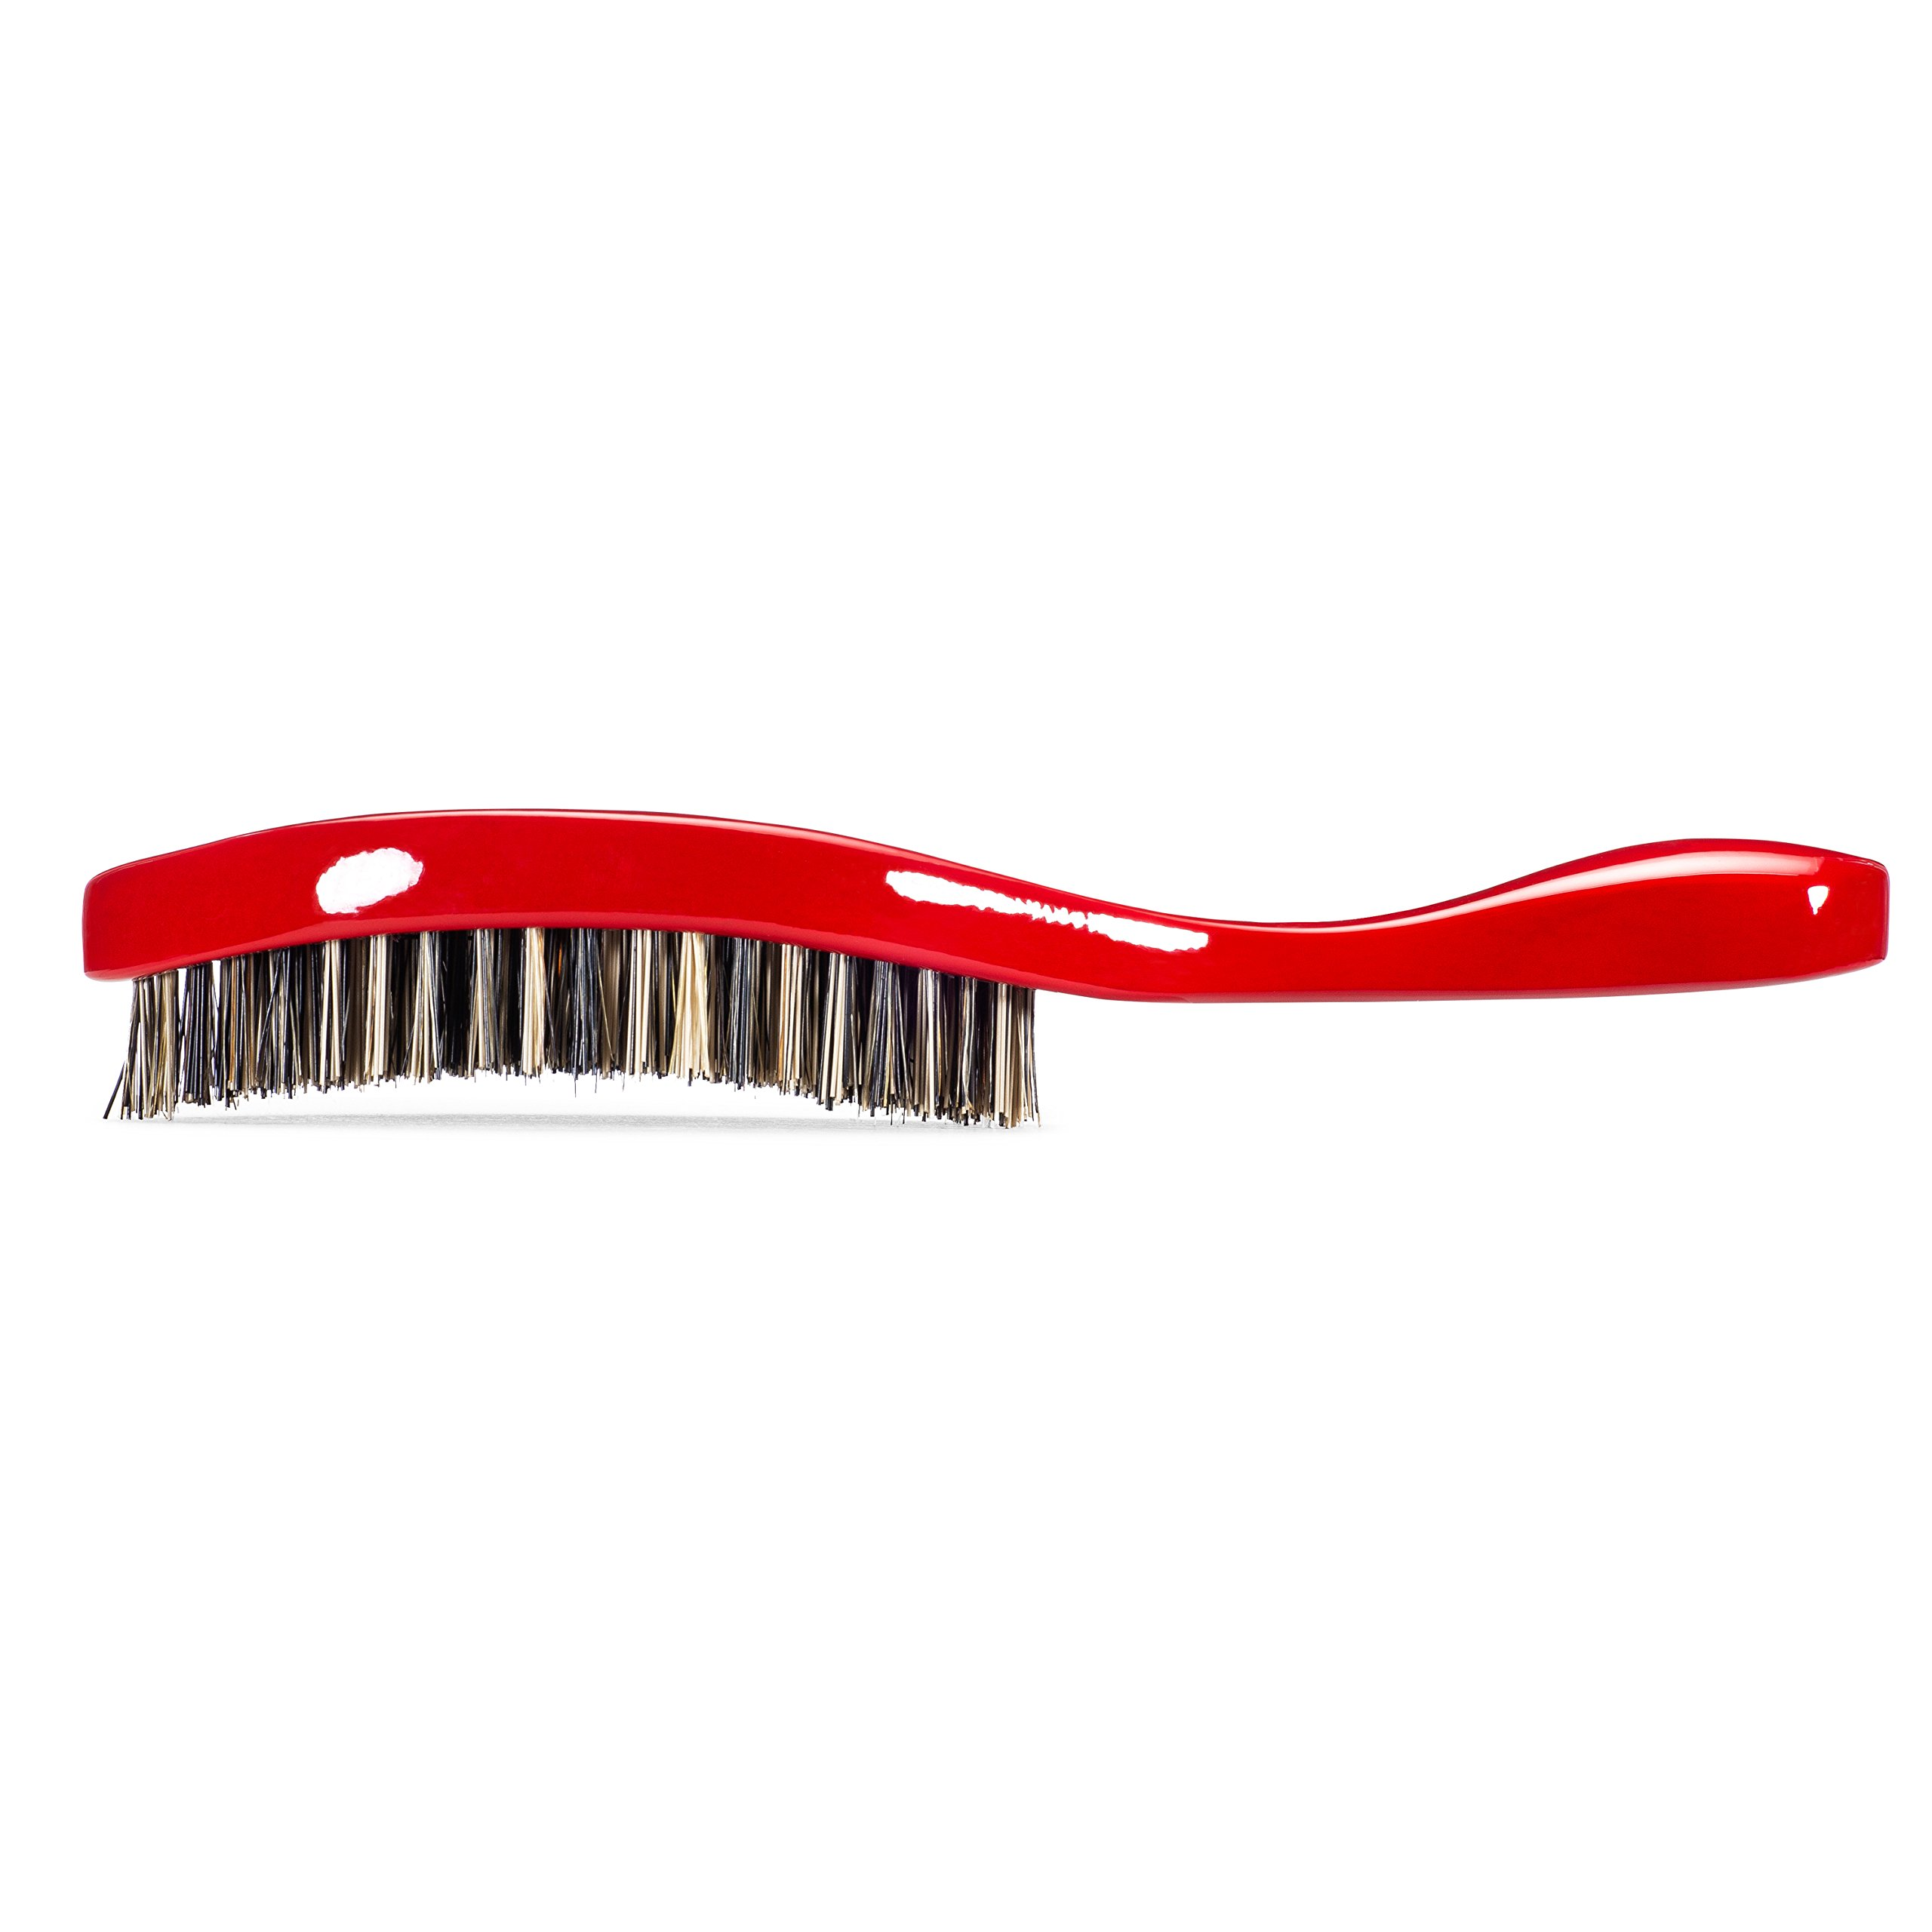 Torino Pro Wave Brush #470 by Brush King - Extra Hard Curve Wave Brush with Reinforced Boar & Nylon Bristles - Great for Wolfing - Curved 360 Waves Brush by Torino Pro (Image #3)